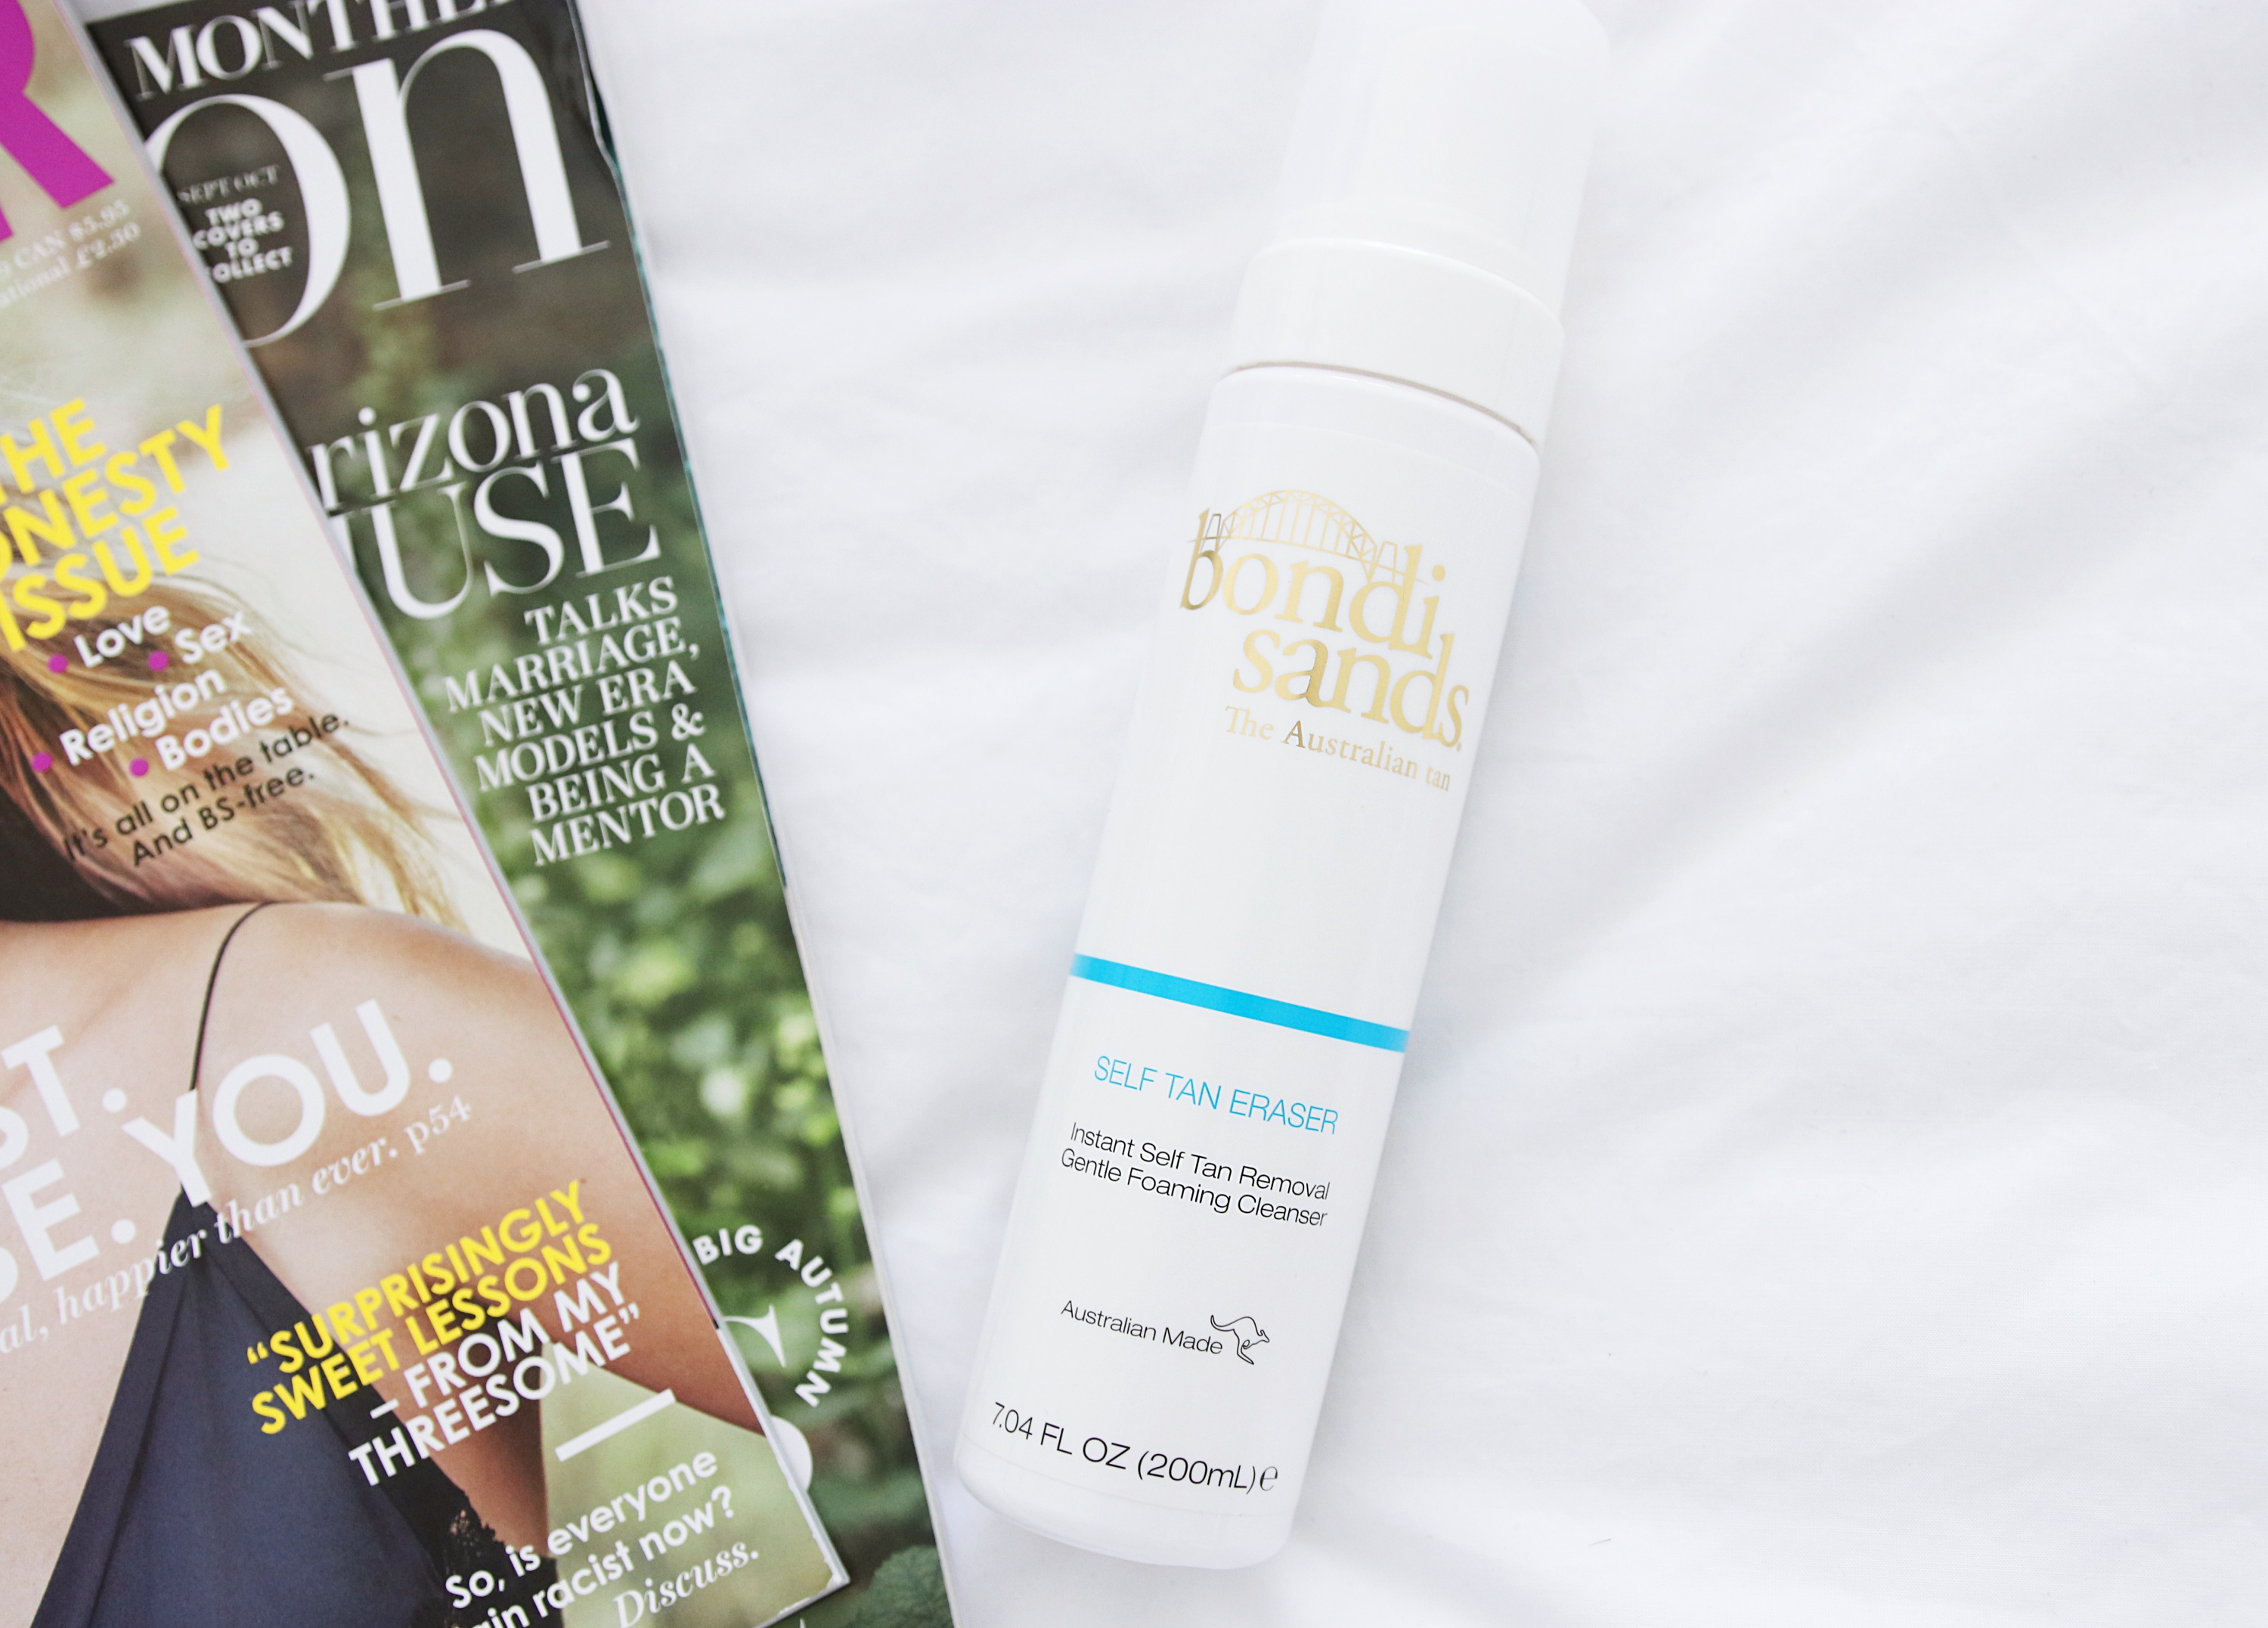 Bondi Sands Tan Eraser Review - Beauty Blog UK